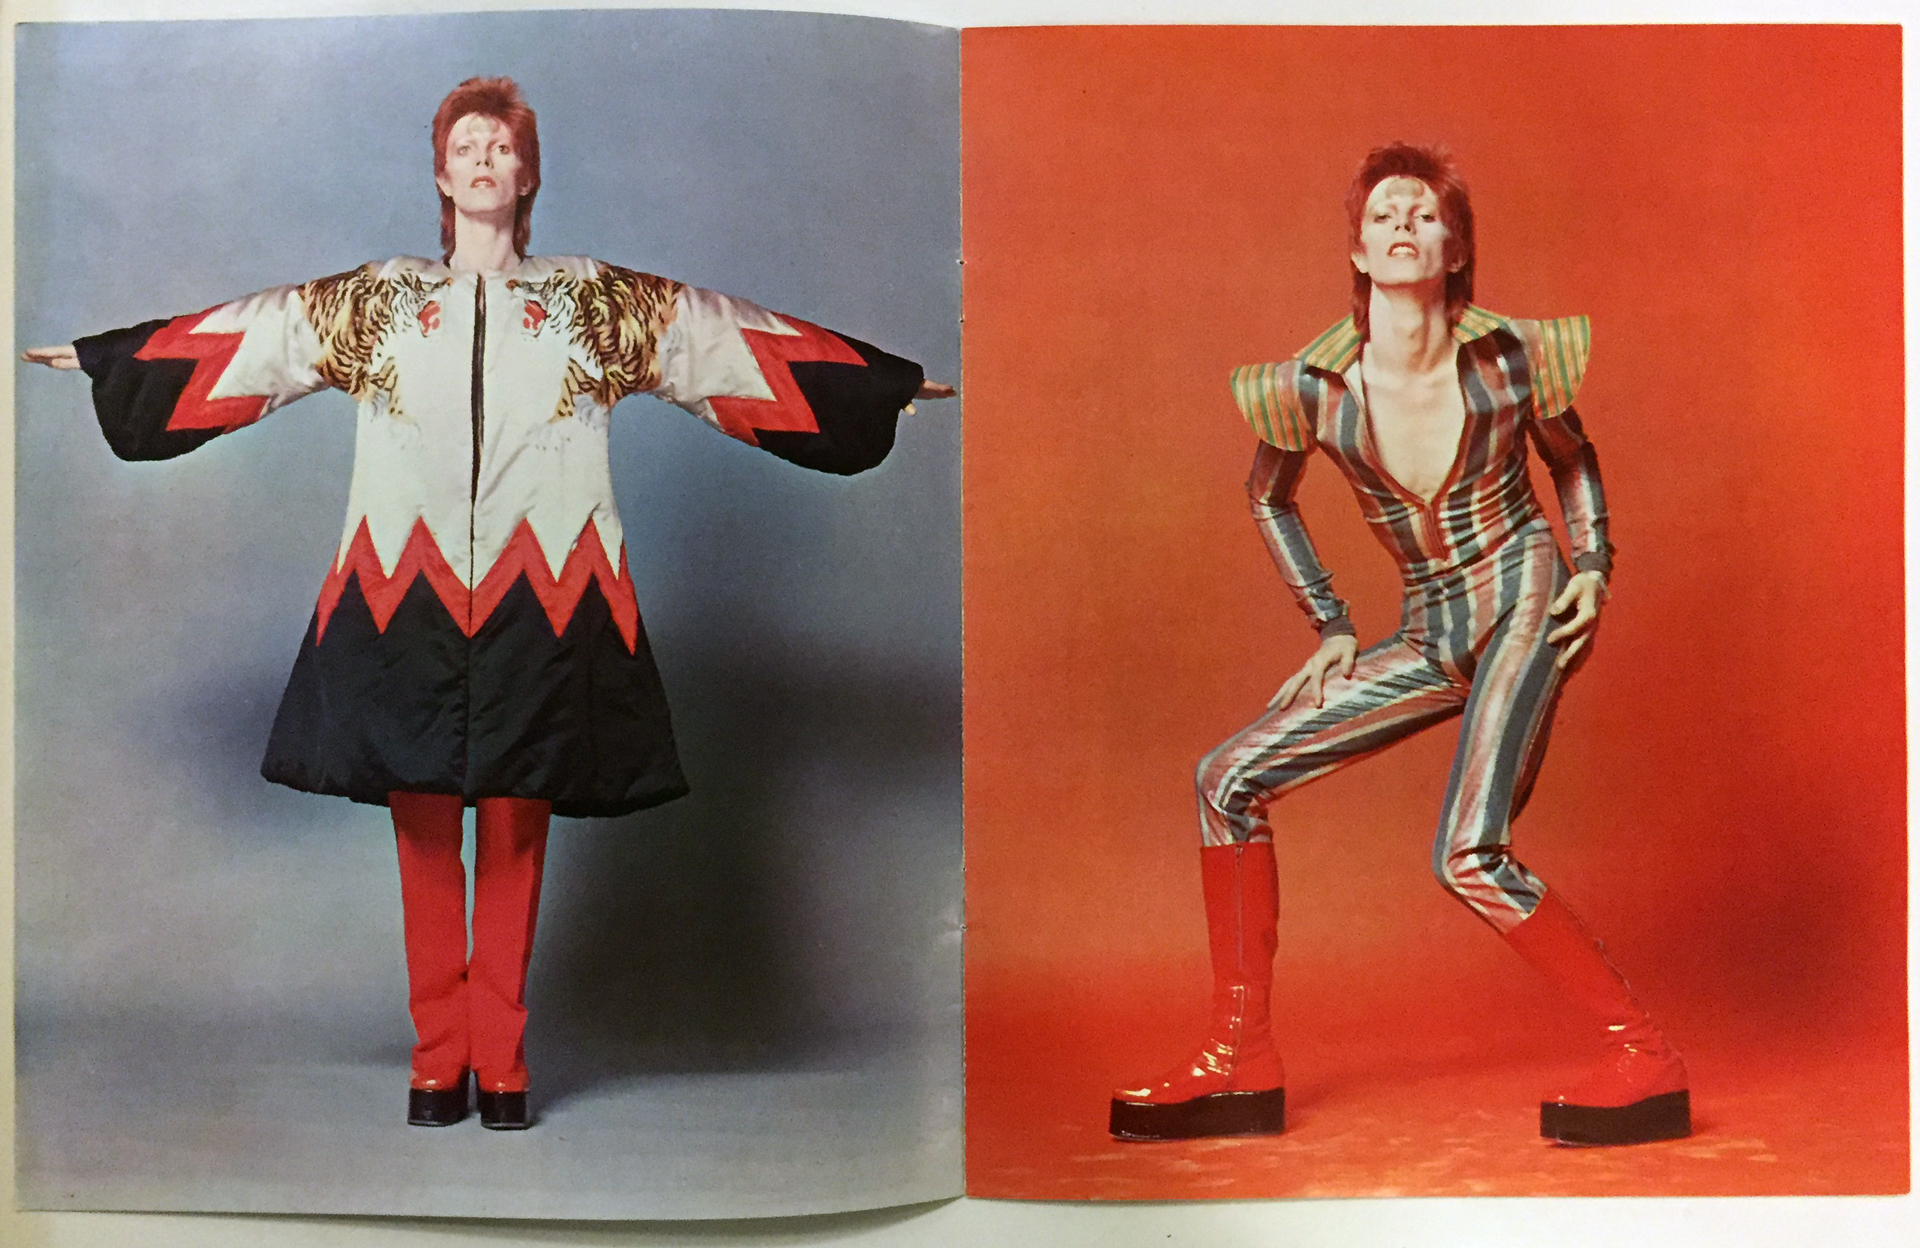 A Personal History of David Bowie on the Occasion of the First Anniversary of his Death